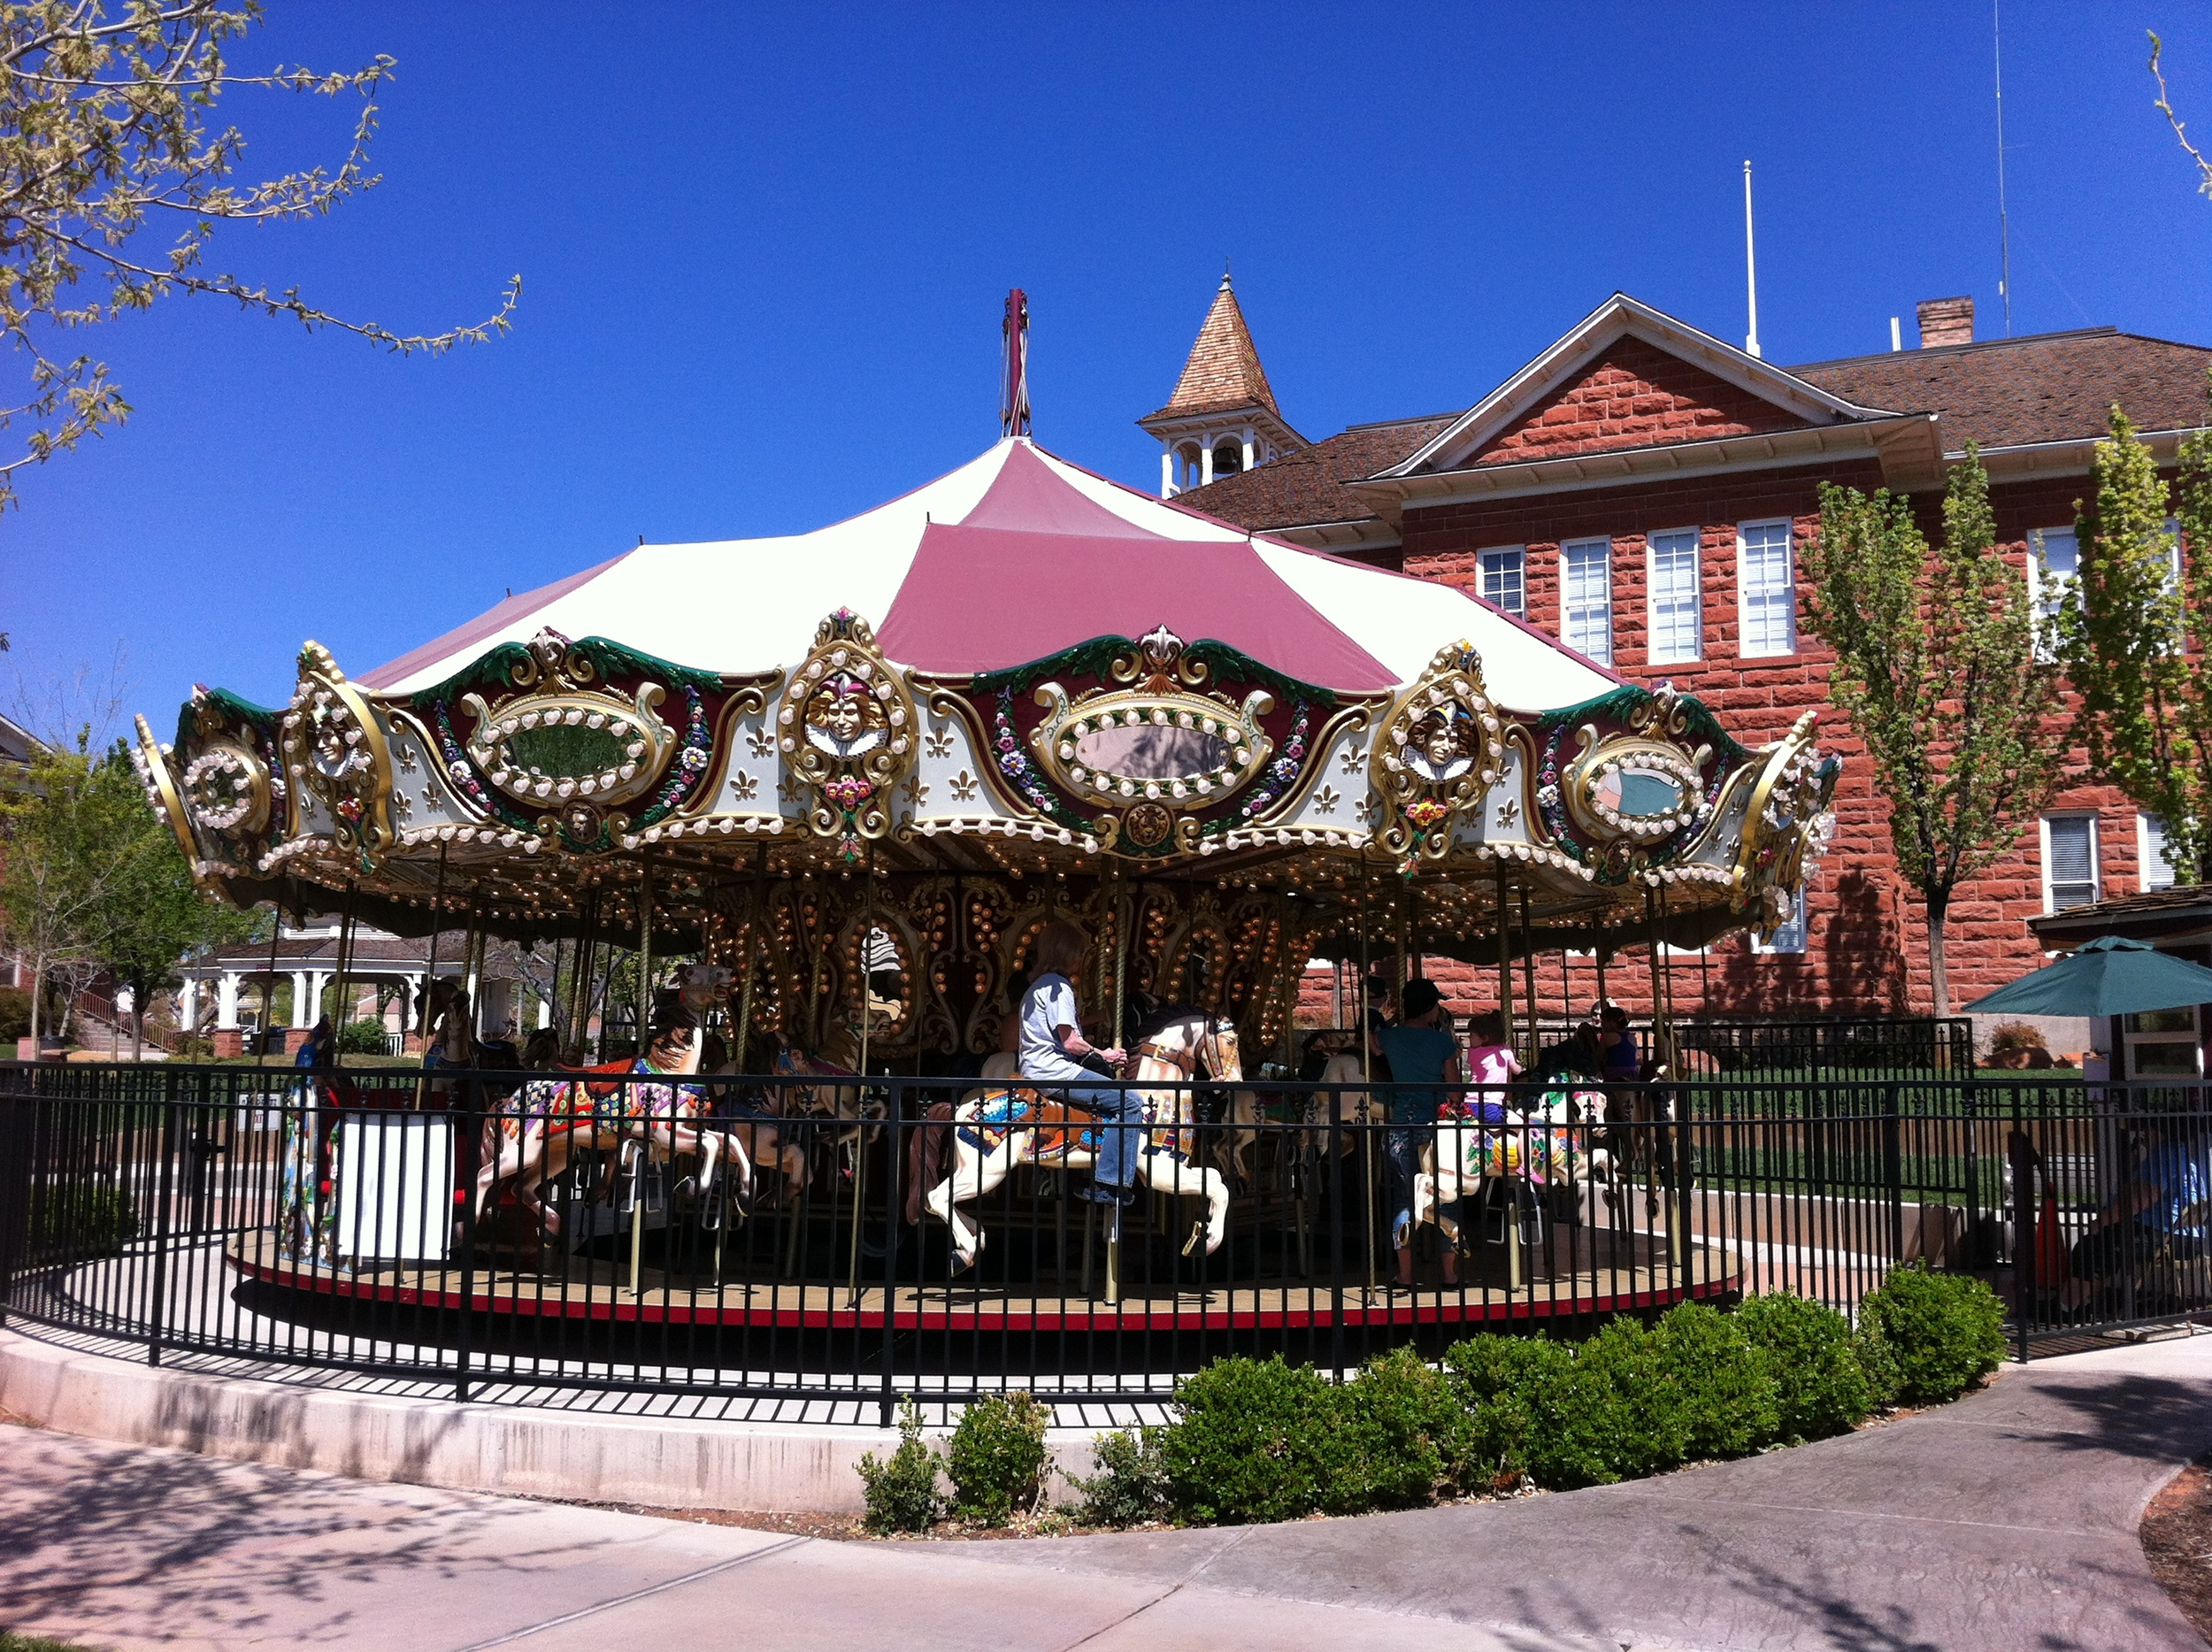 The Carousel is just one of several elements that makes St. George's Town Square and inviting public space.